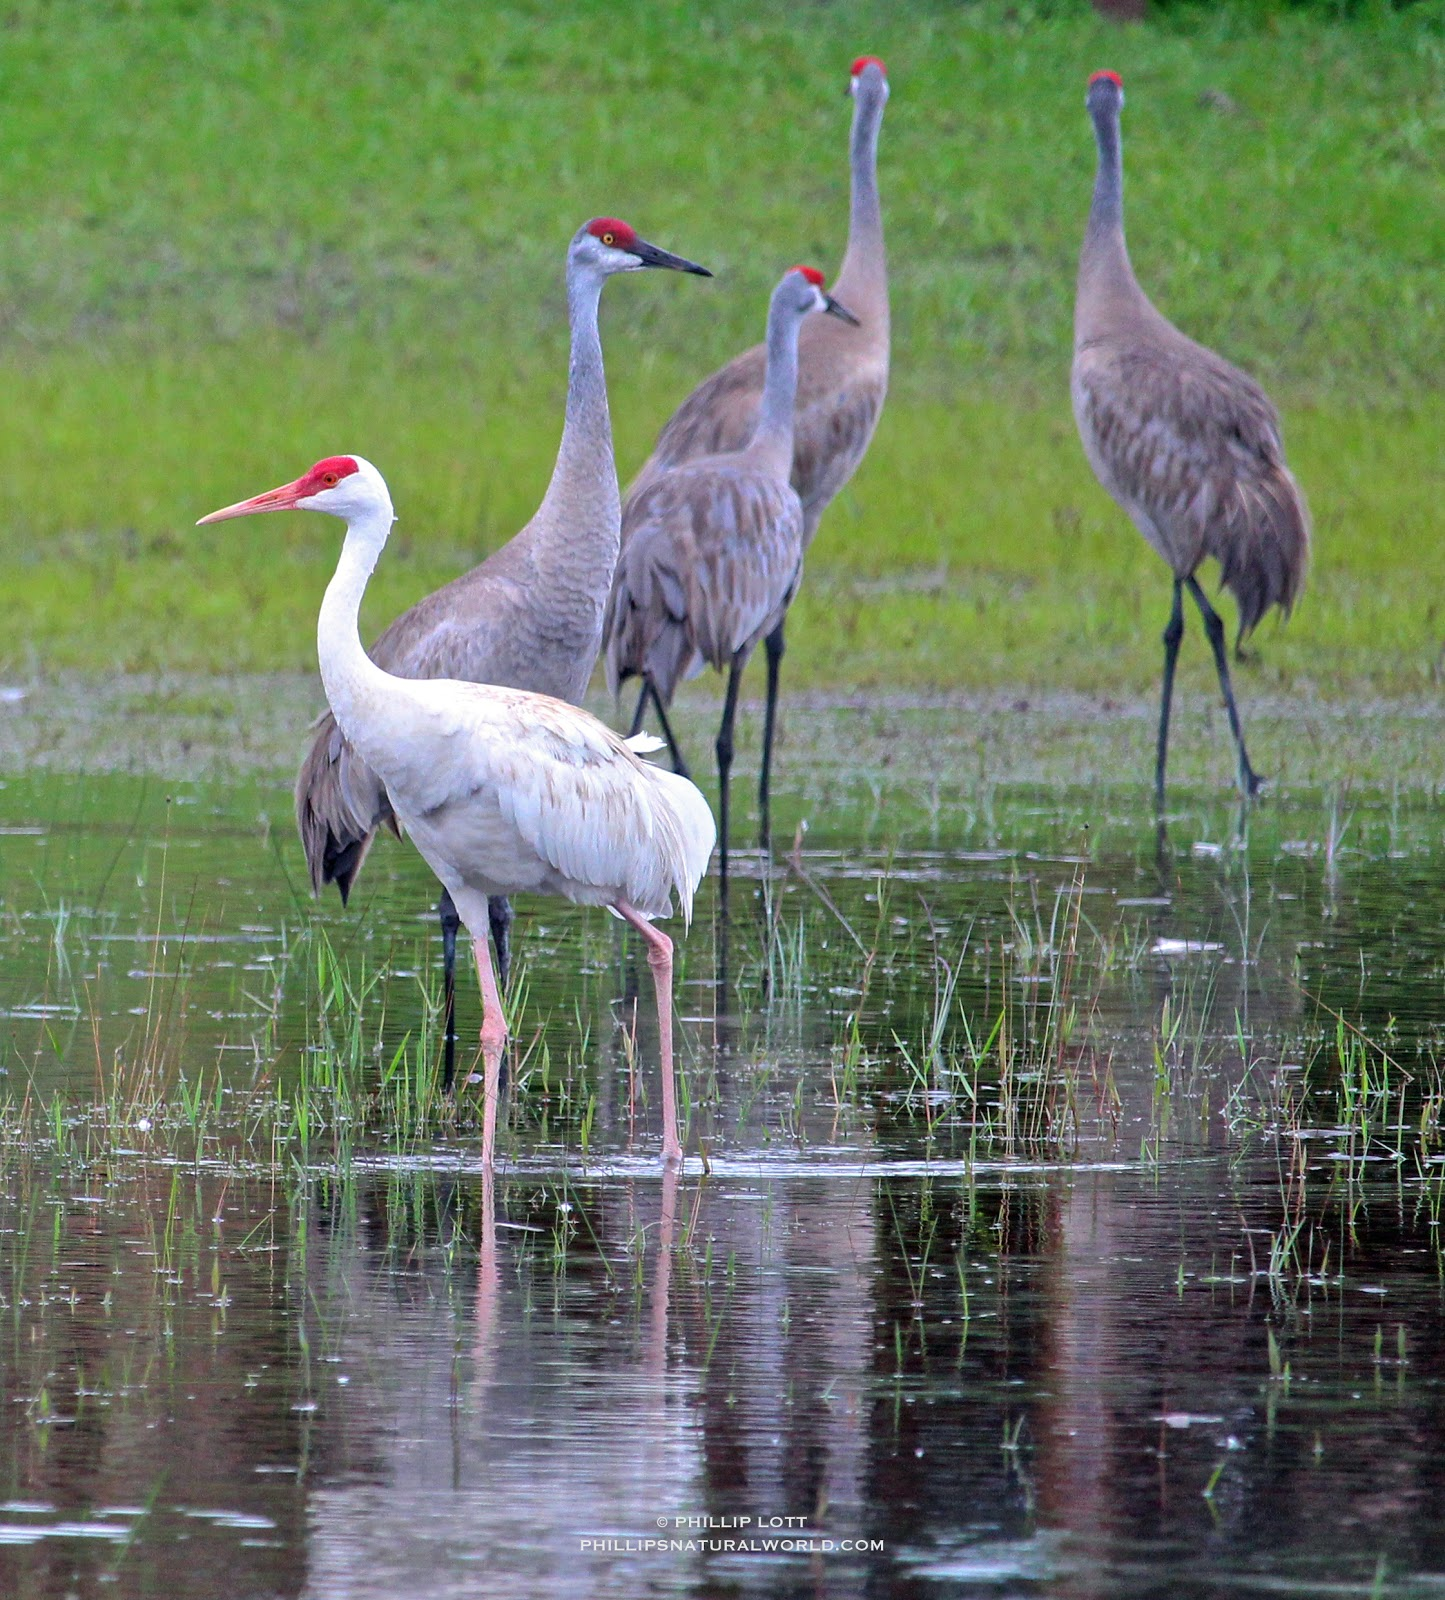 This Summer Floridas Rarest Bird May Well Be 1 In A Million Leucistic Almost All White Sandhill Crane That Is Roosting The Huge Lake Theresa